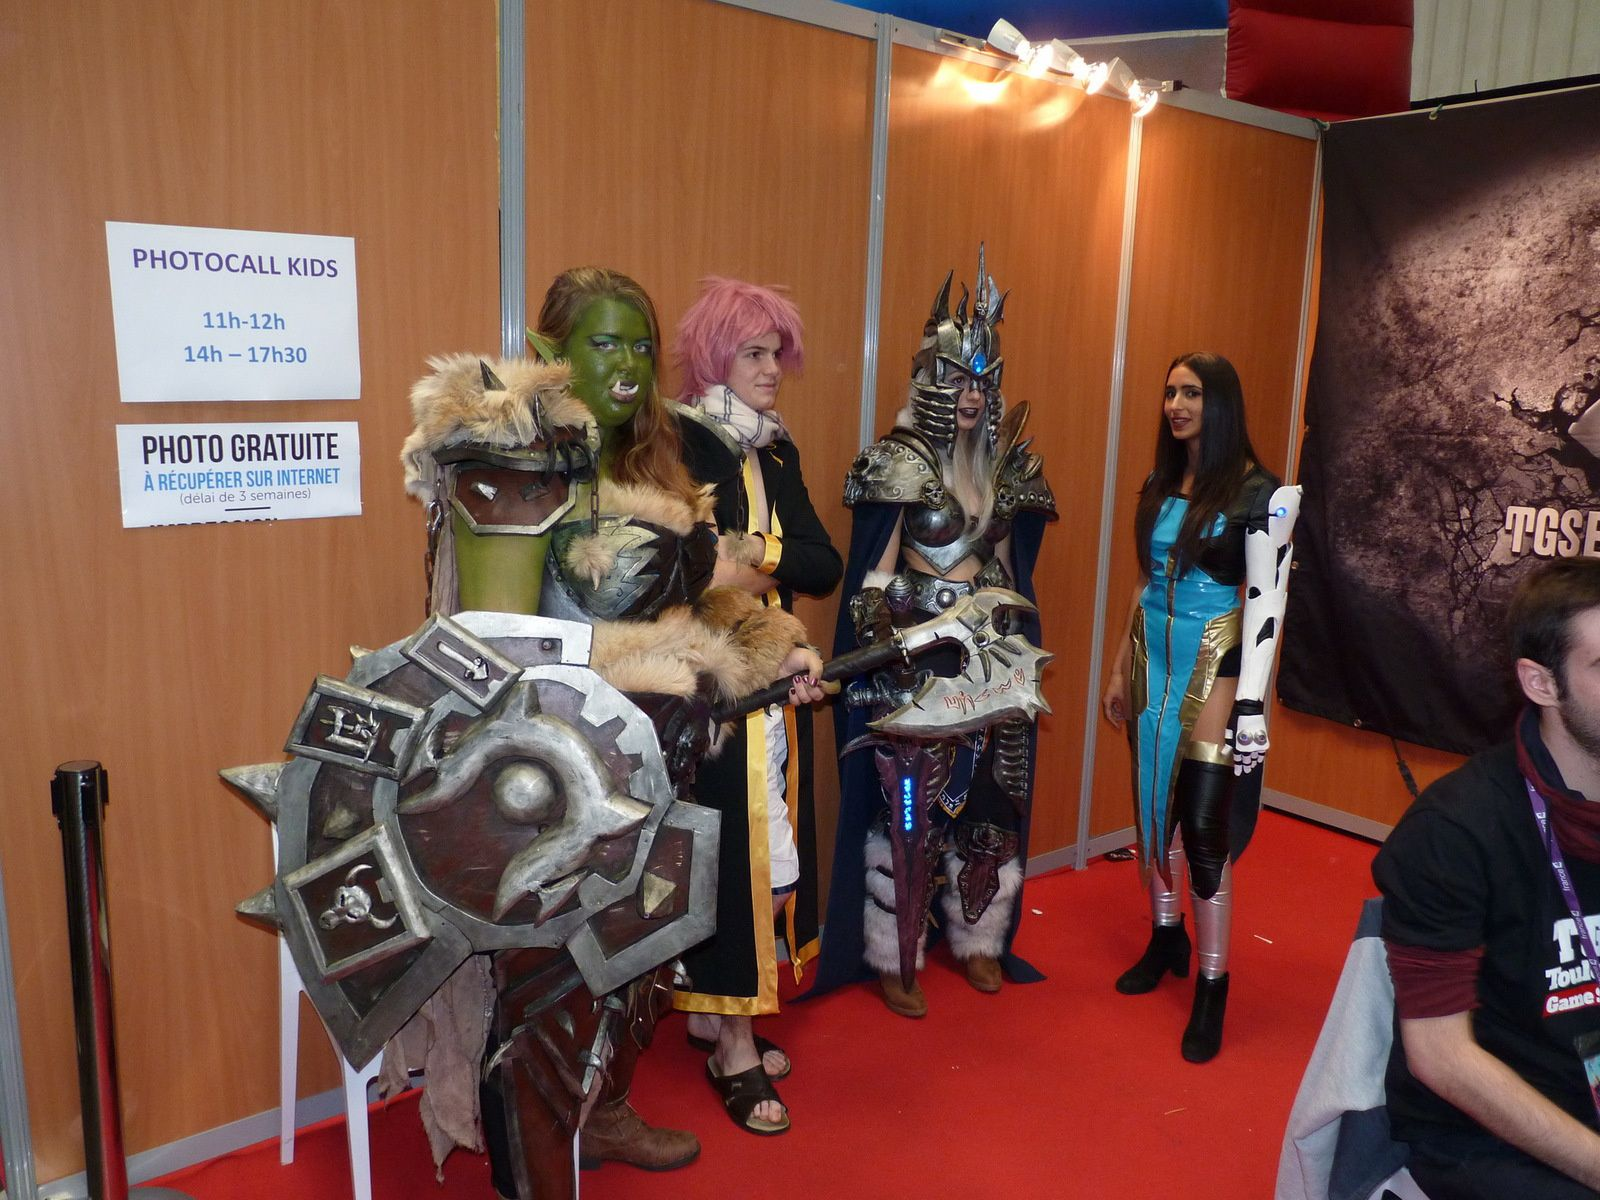 [TOULOUSE GAME SHOW 2017] Le paradis du cosplay